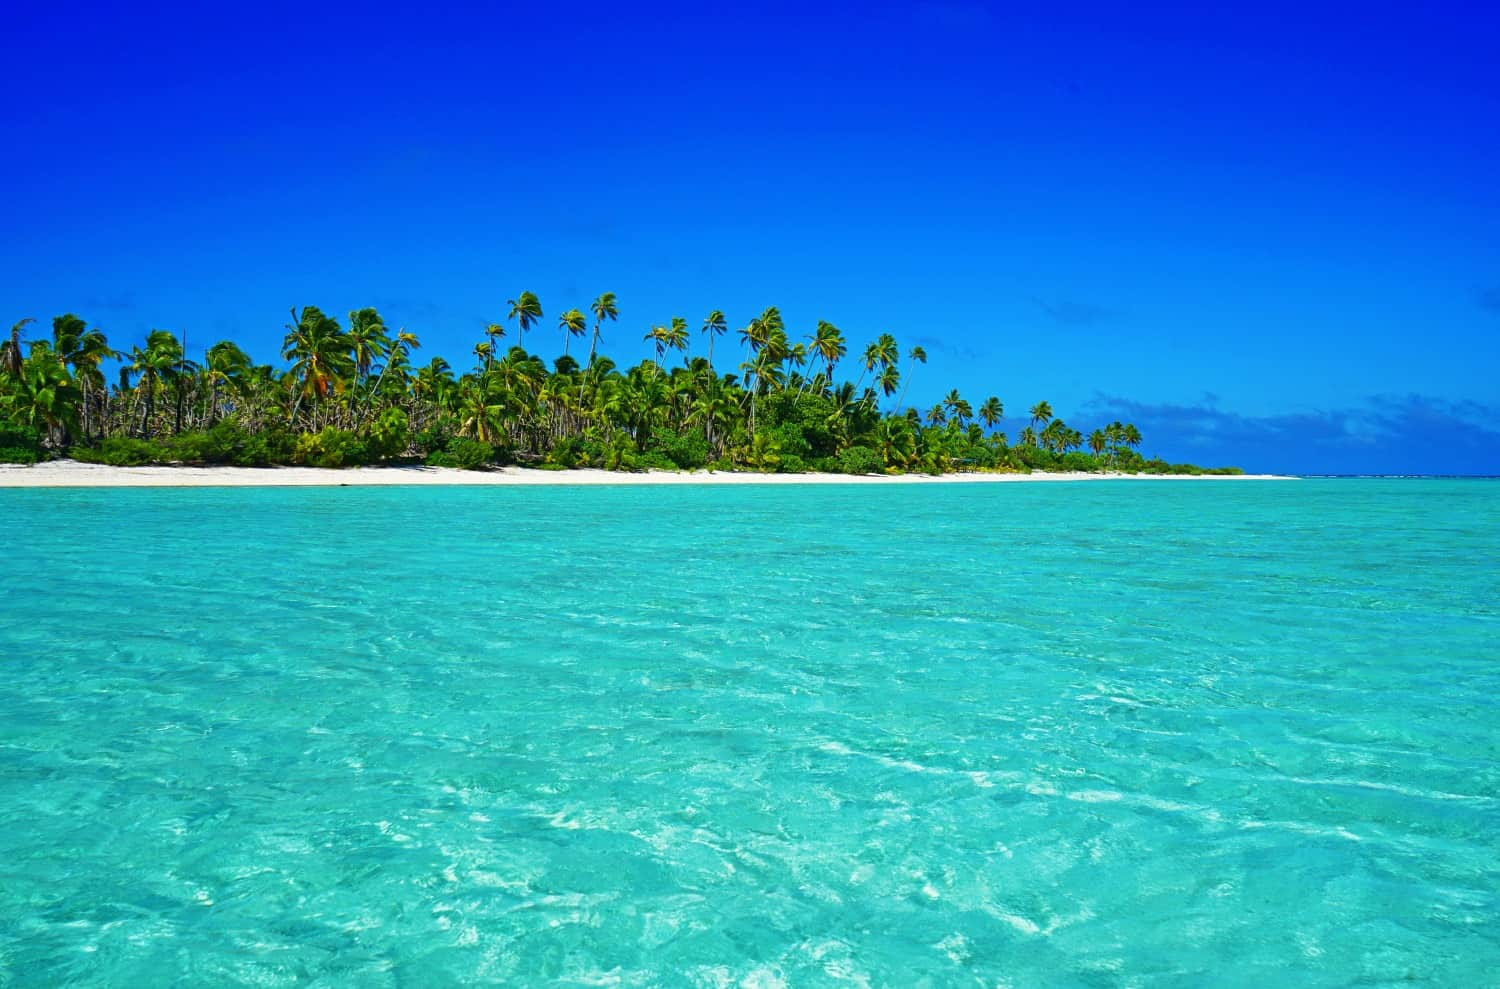 The lagoon in Aitutaki, the Cook Islands. It definitely has to be the prettiest place I've ever visited